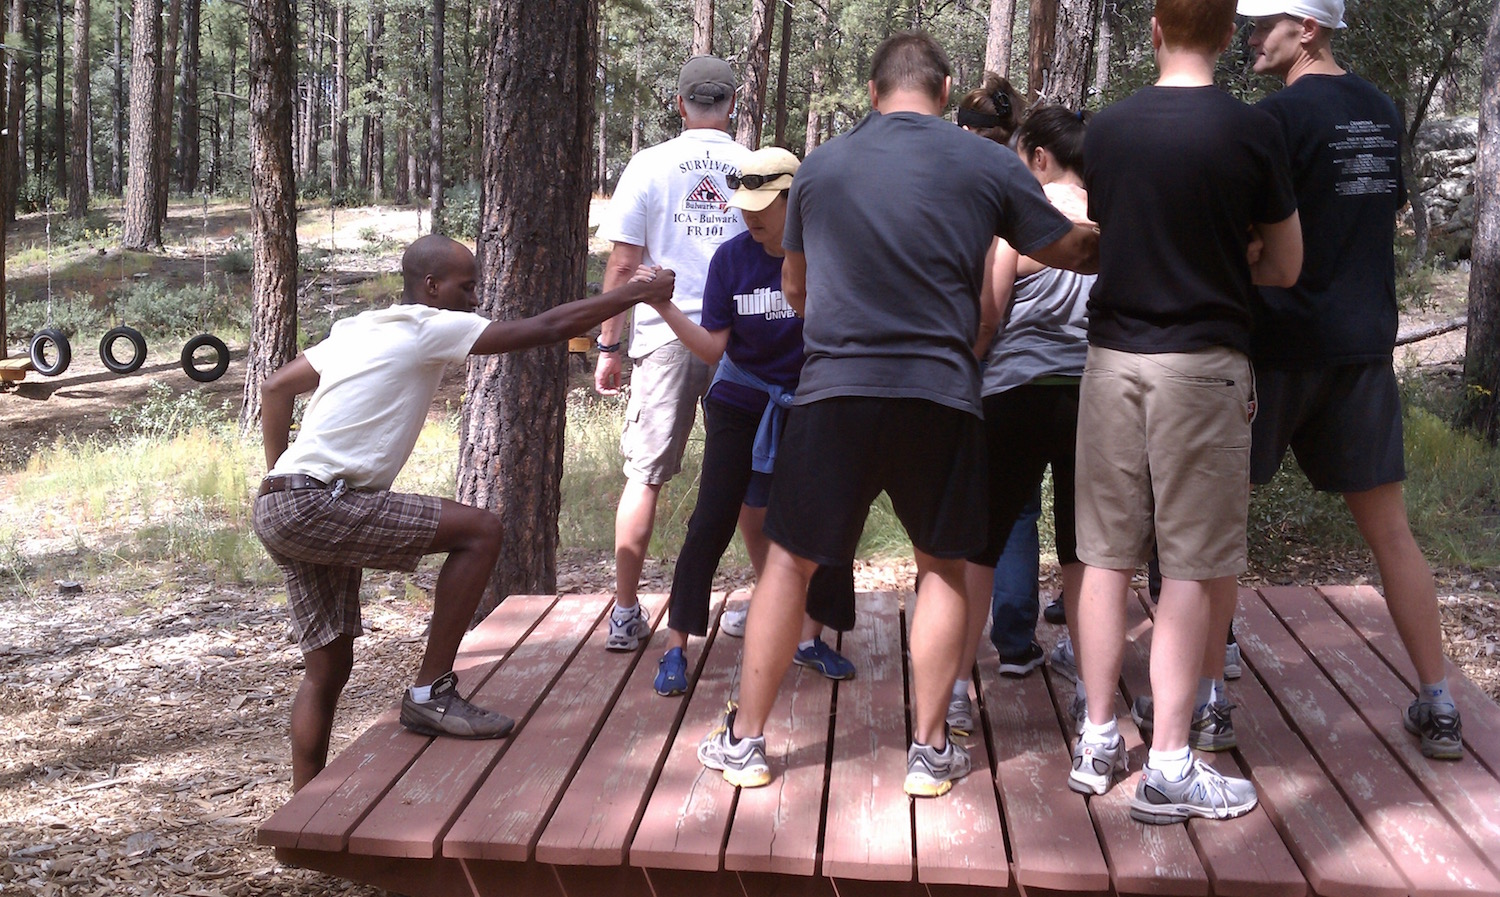 Cooperative High and Low Ropes Course team building Events for Corporate and Workplace Teams